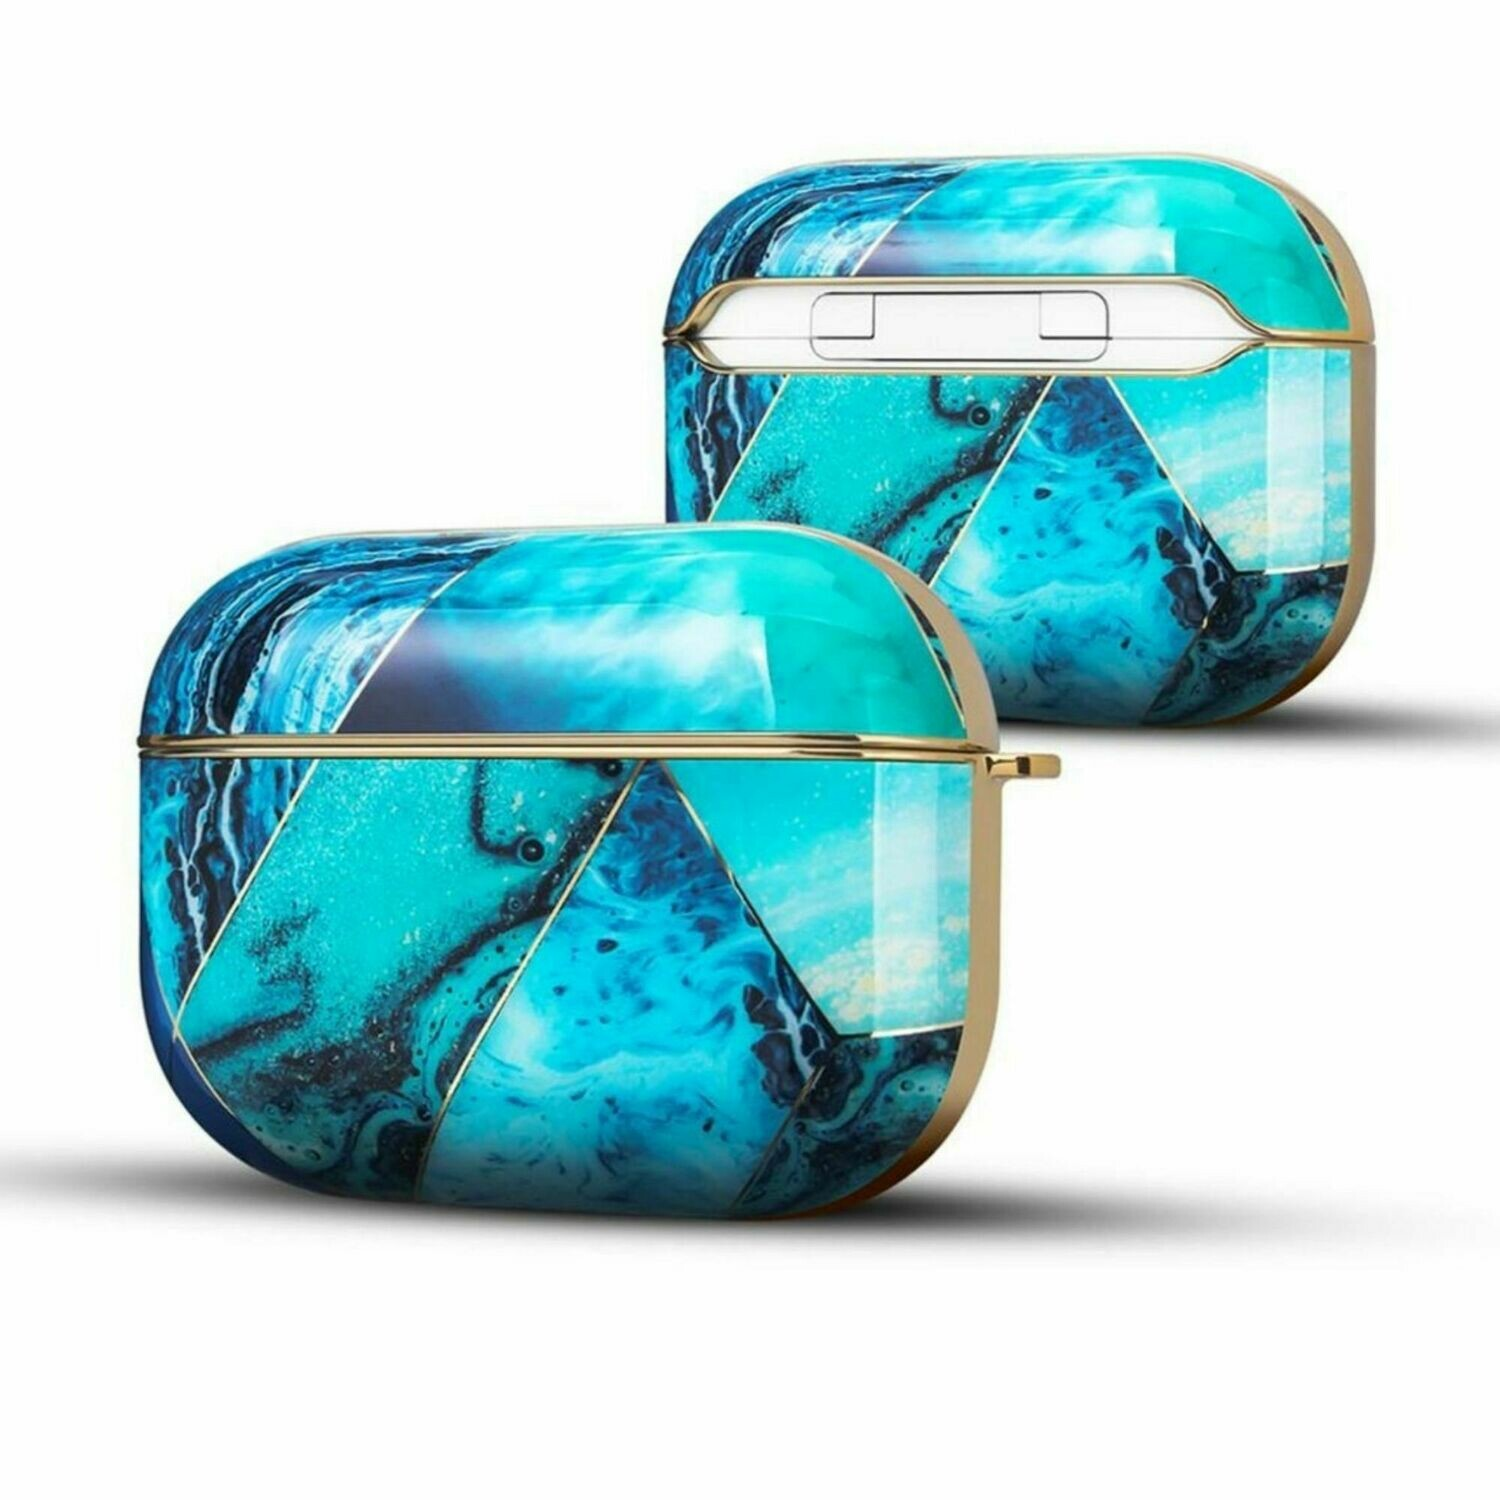 Apple Airpods Pro Electroplated Case Cover TPU Design with Key Chain Option, Wireless Charging Support (Electroplated Ocean Blue | Pro)